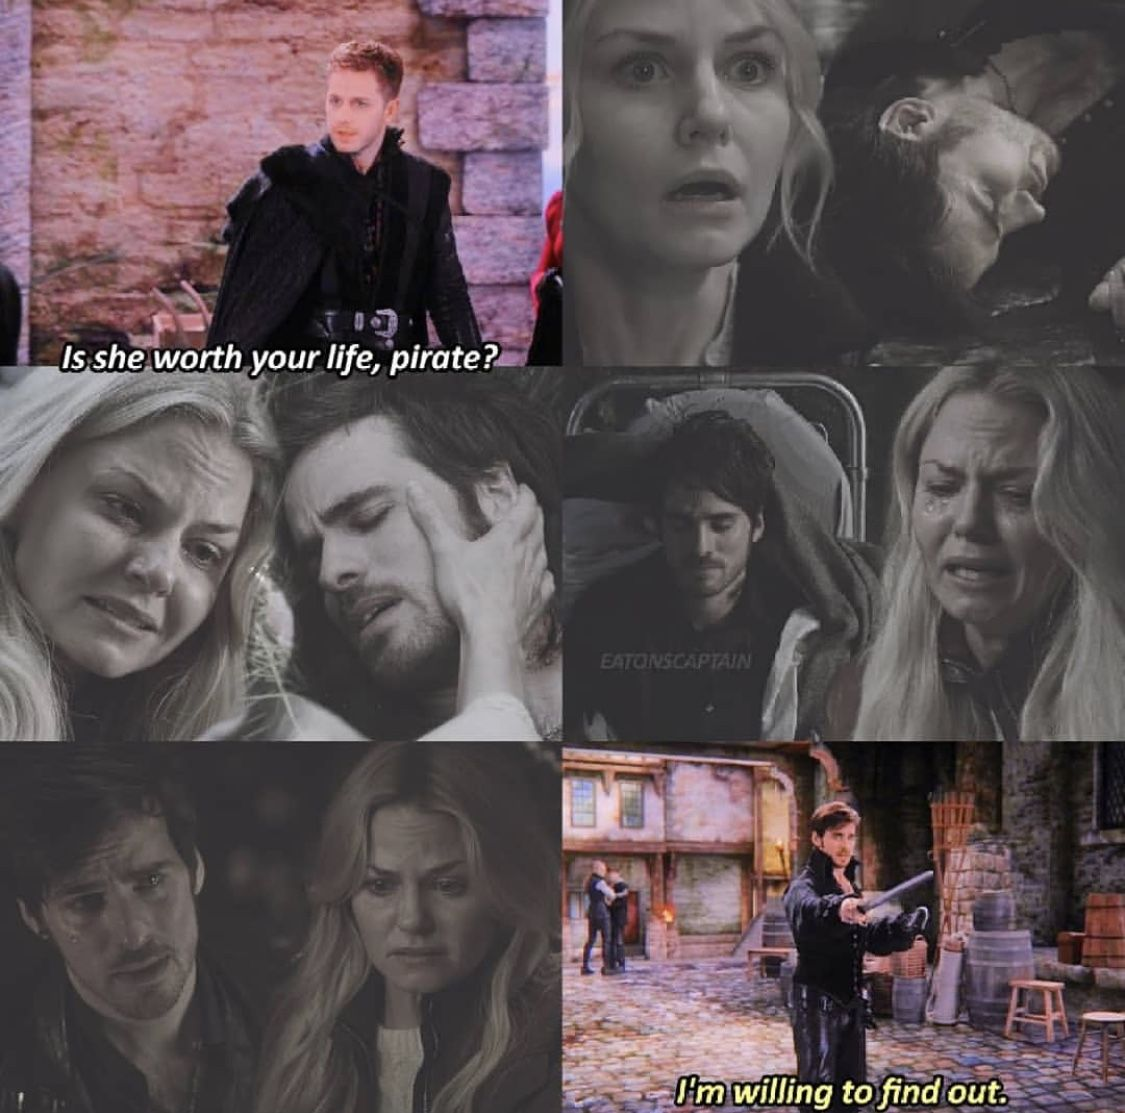 Pin by Alexis Reka Vivienne Arquiza on Once Upon A Time in 2019